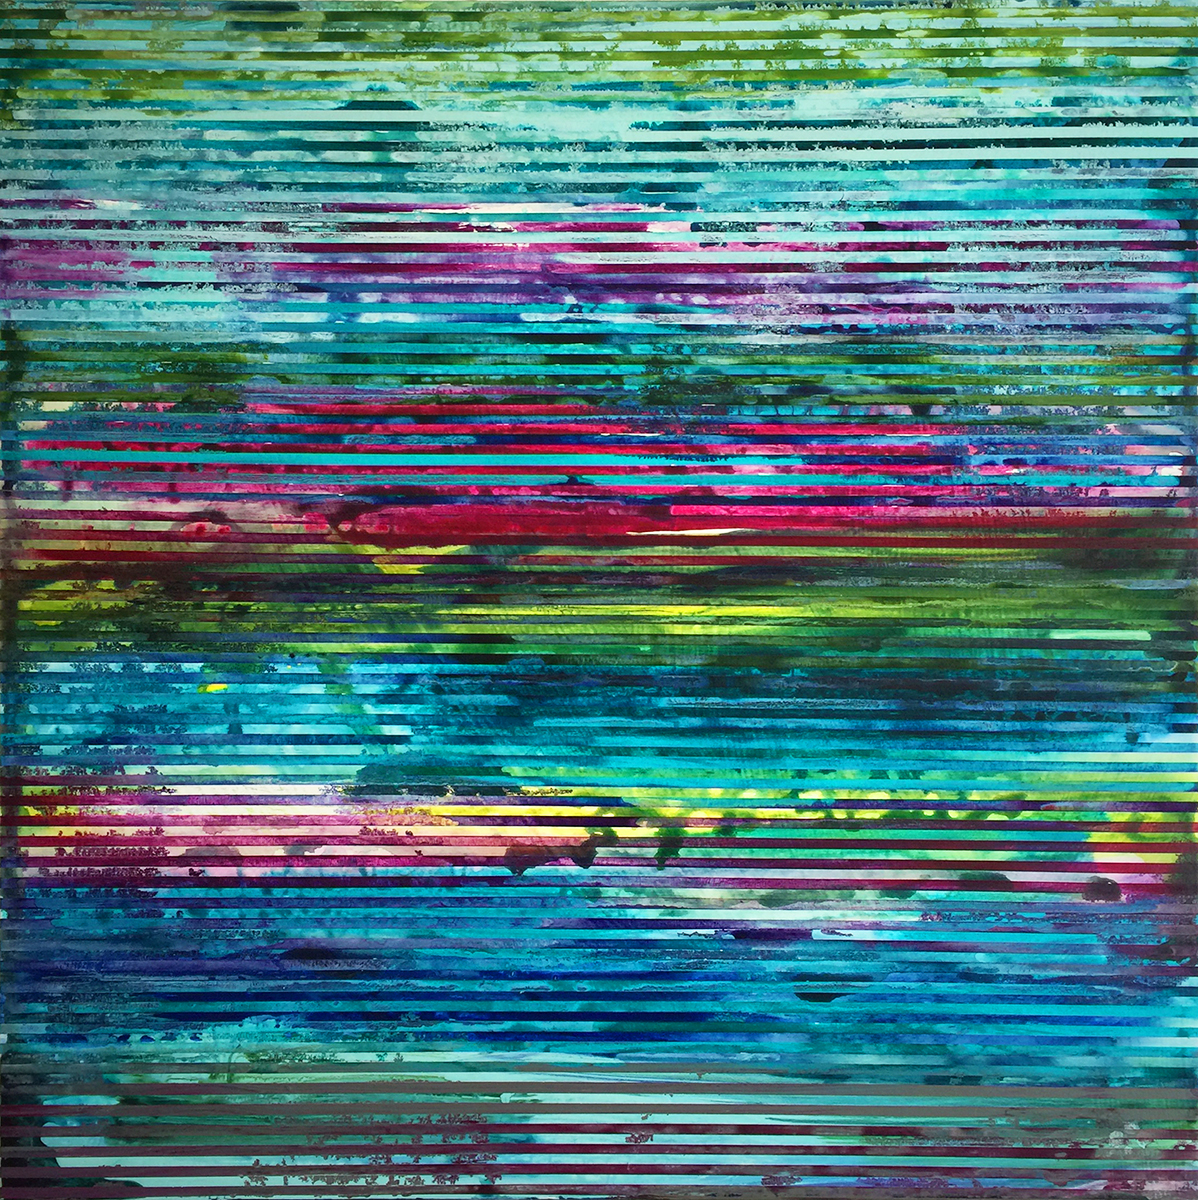 Weaving Landscape_30 x 30 inches_2A